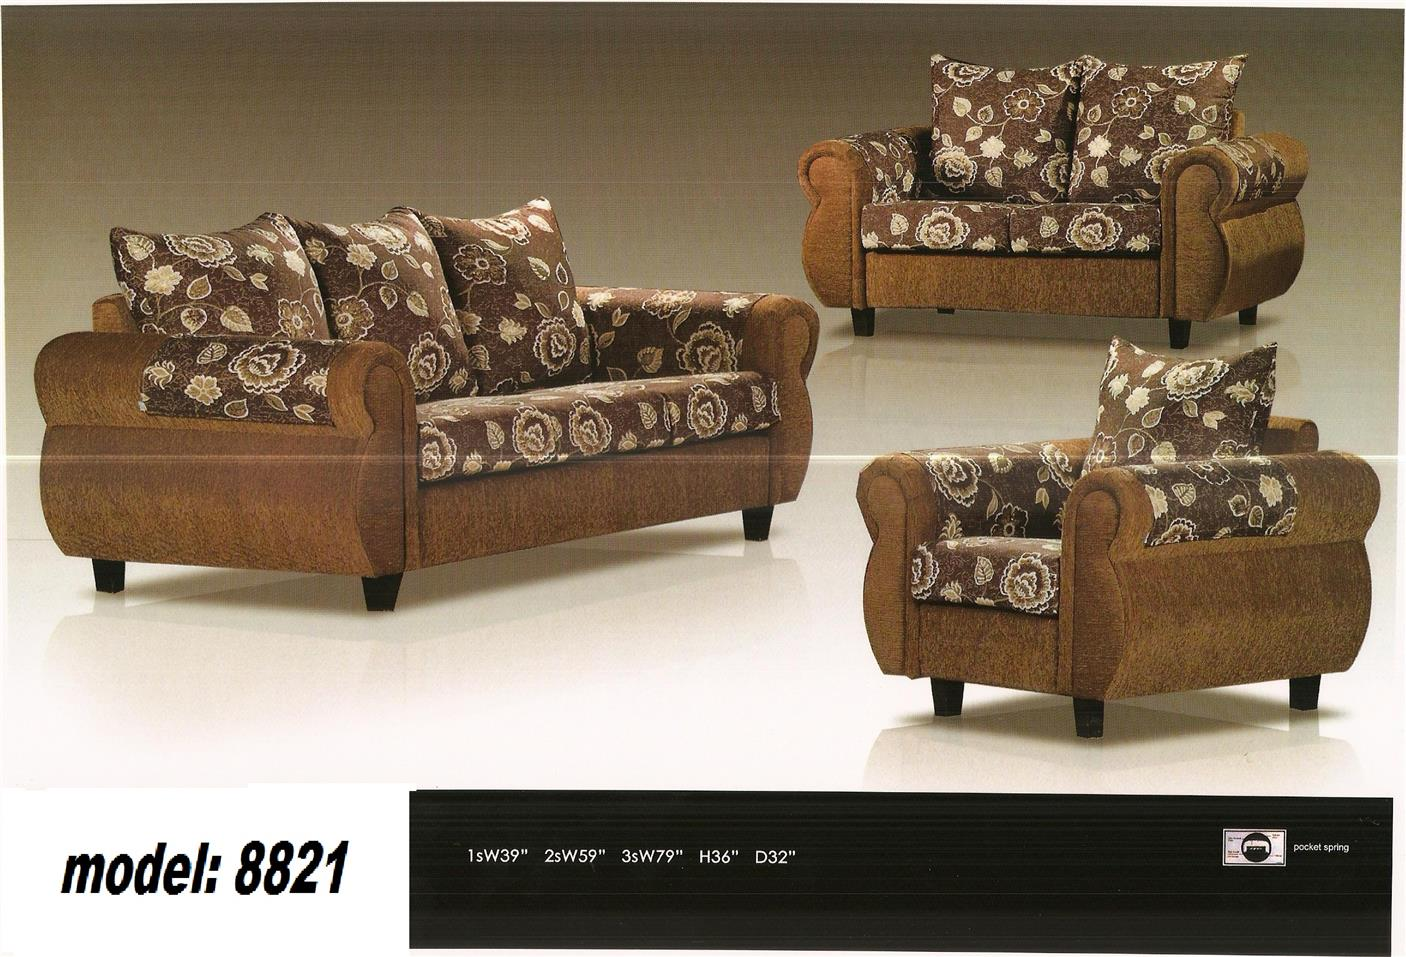 nicehome special offer price sofa1+2+3 model-8821